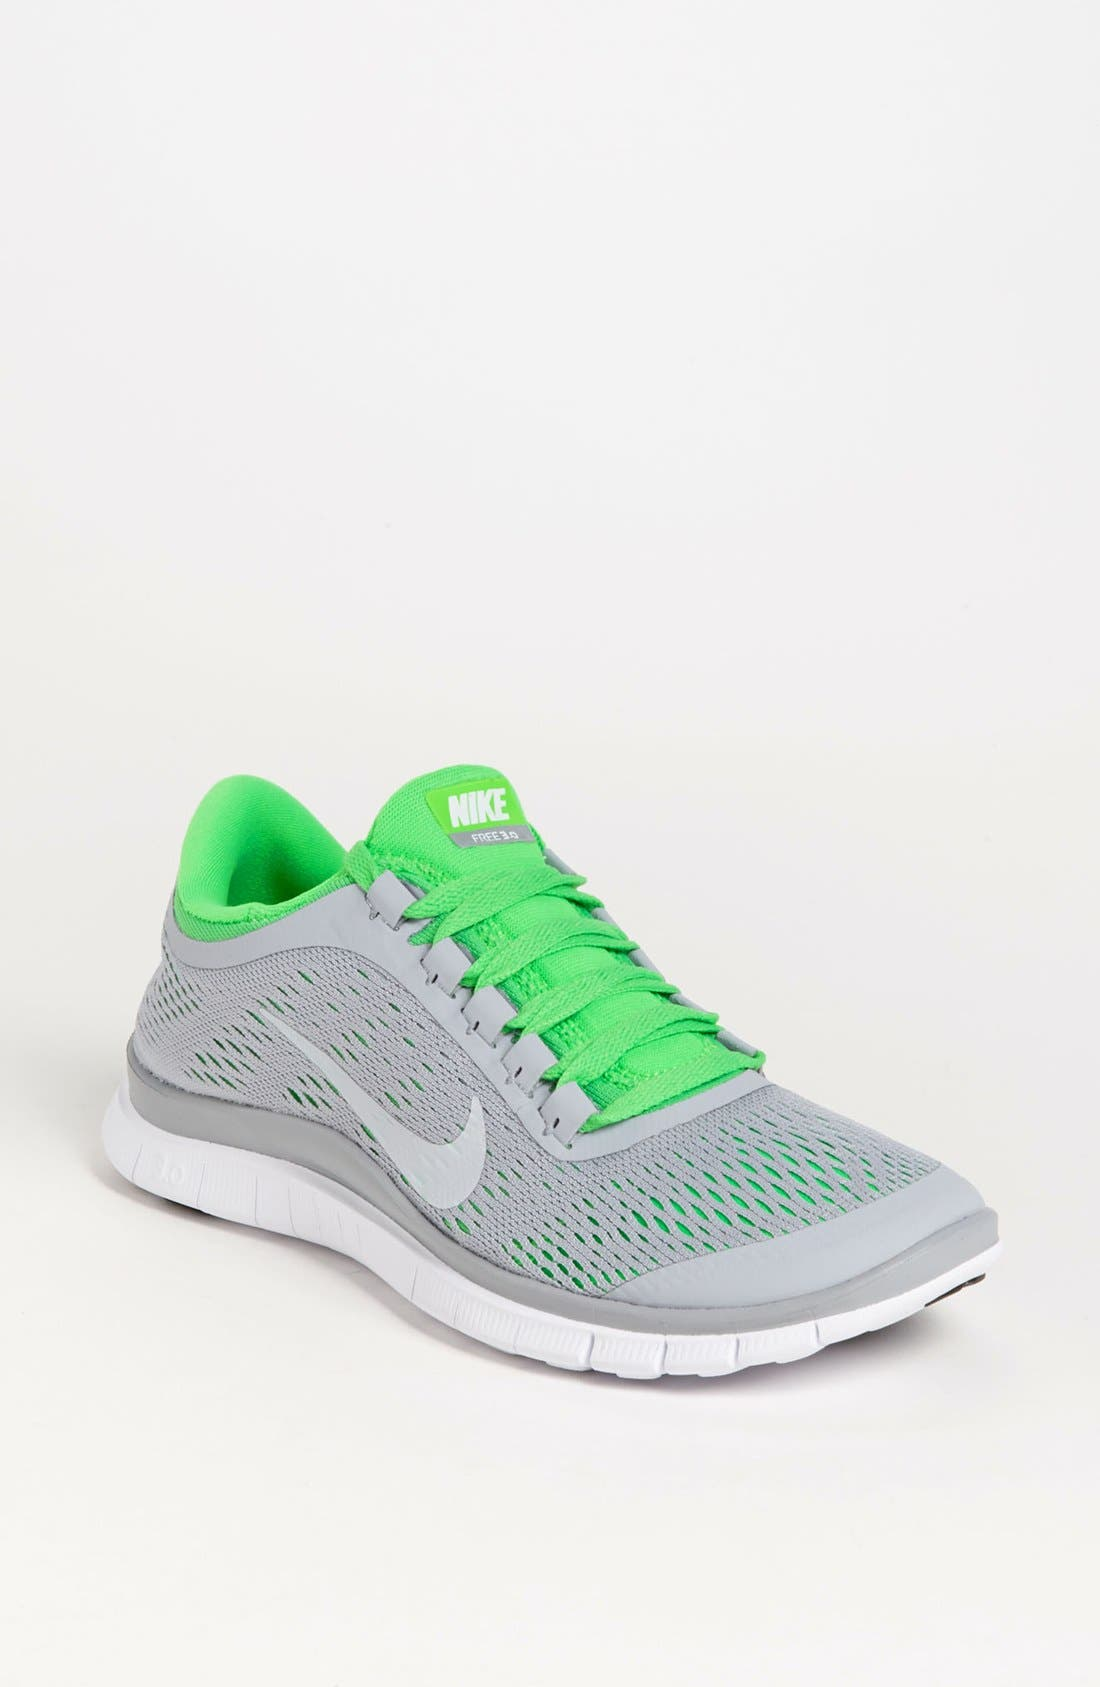 Main Image - Nike 'Free 3.0 v5' Running Shoe (Women)